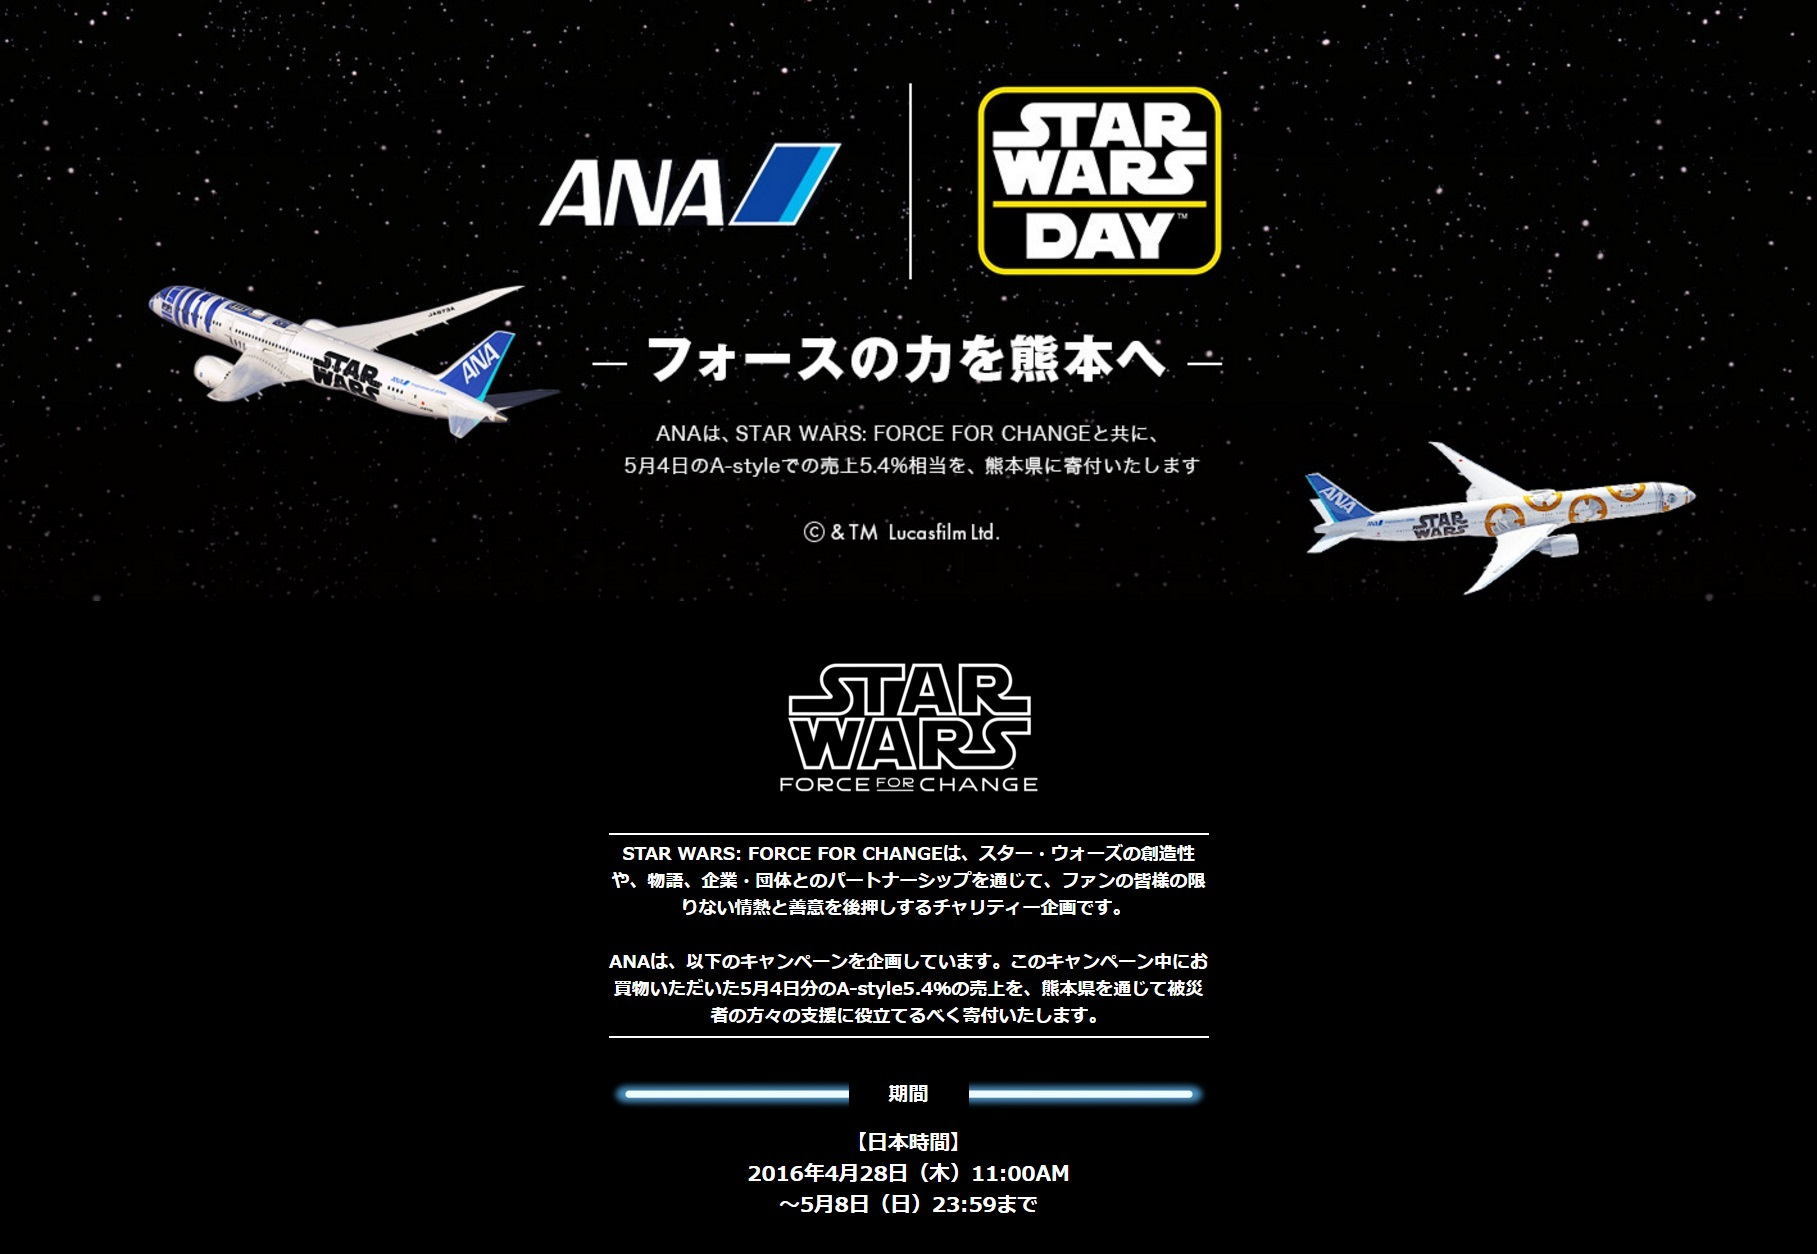 Japan ANA-STAR WARS DAY